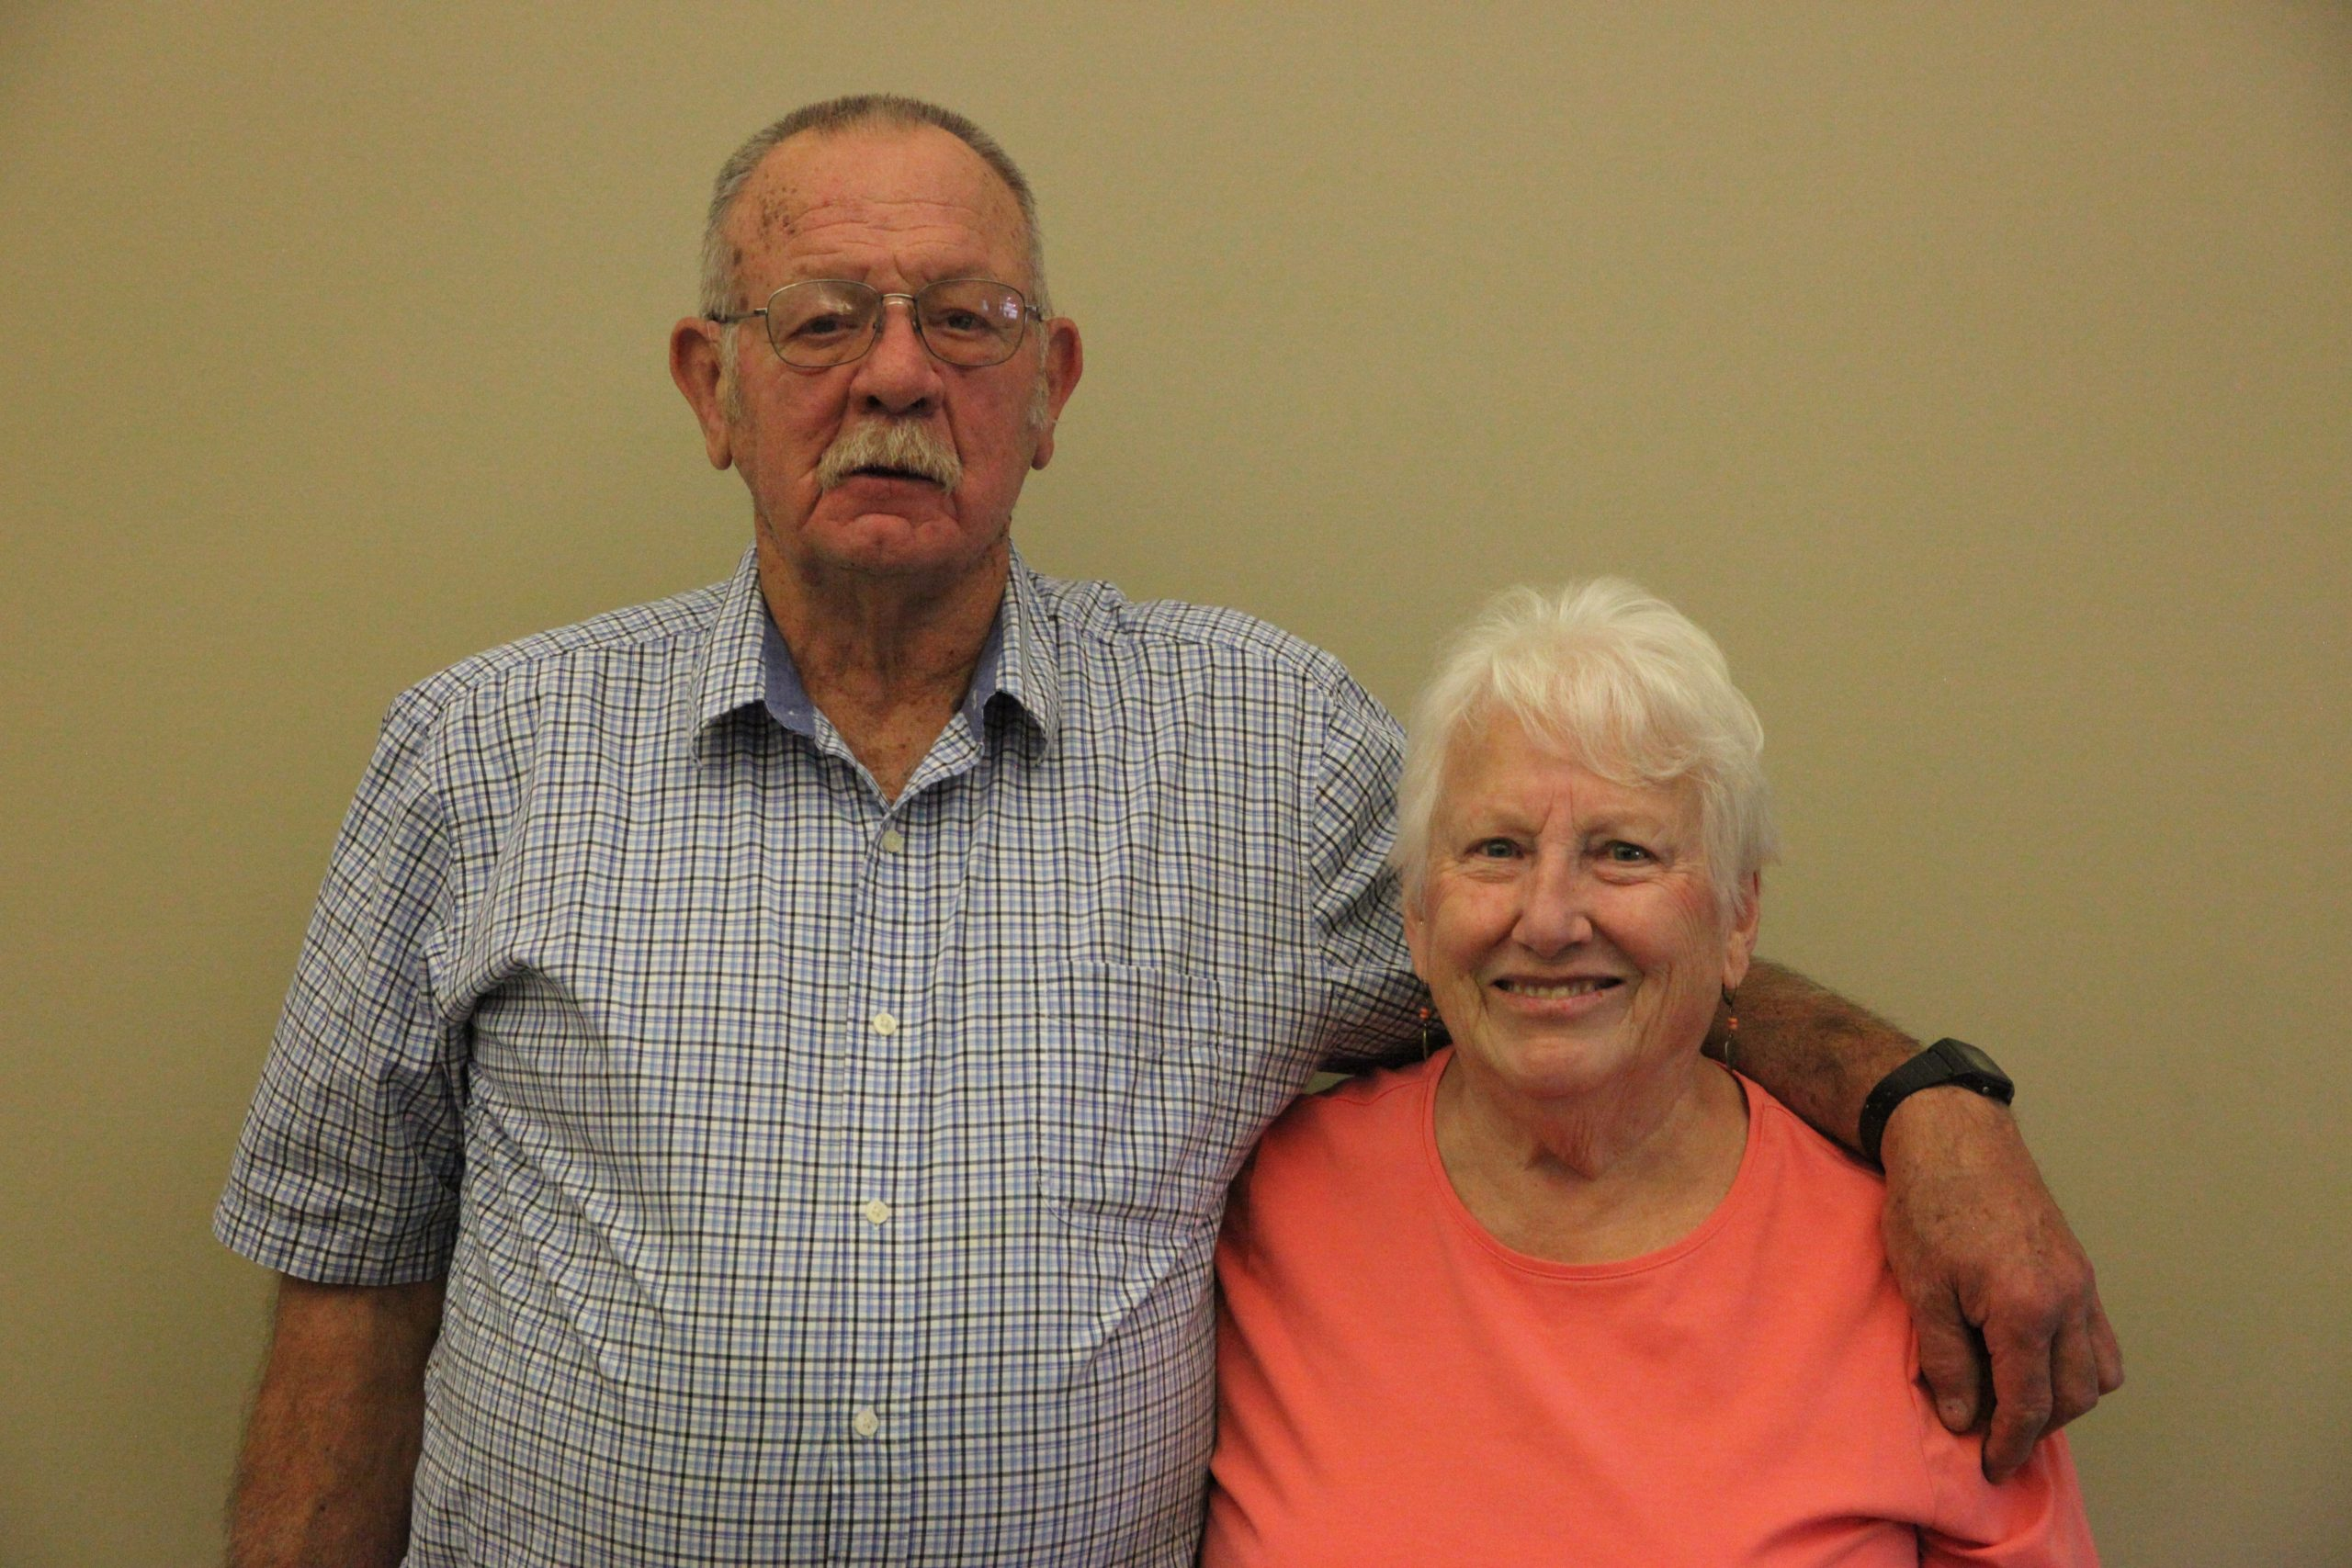 Bob and Diane Thompson honored as this year's parade marshals